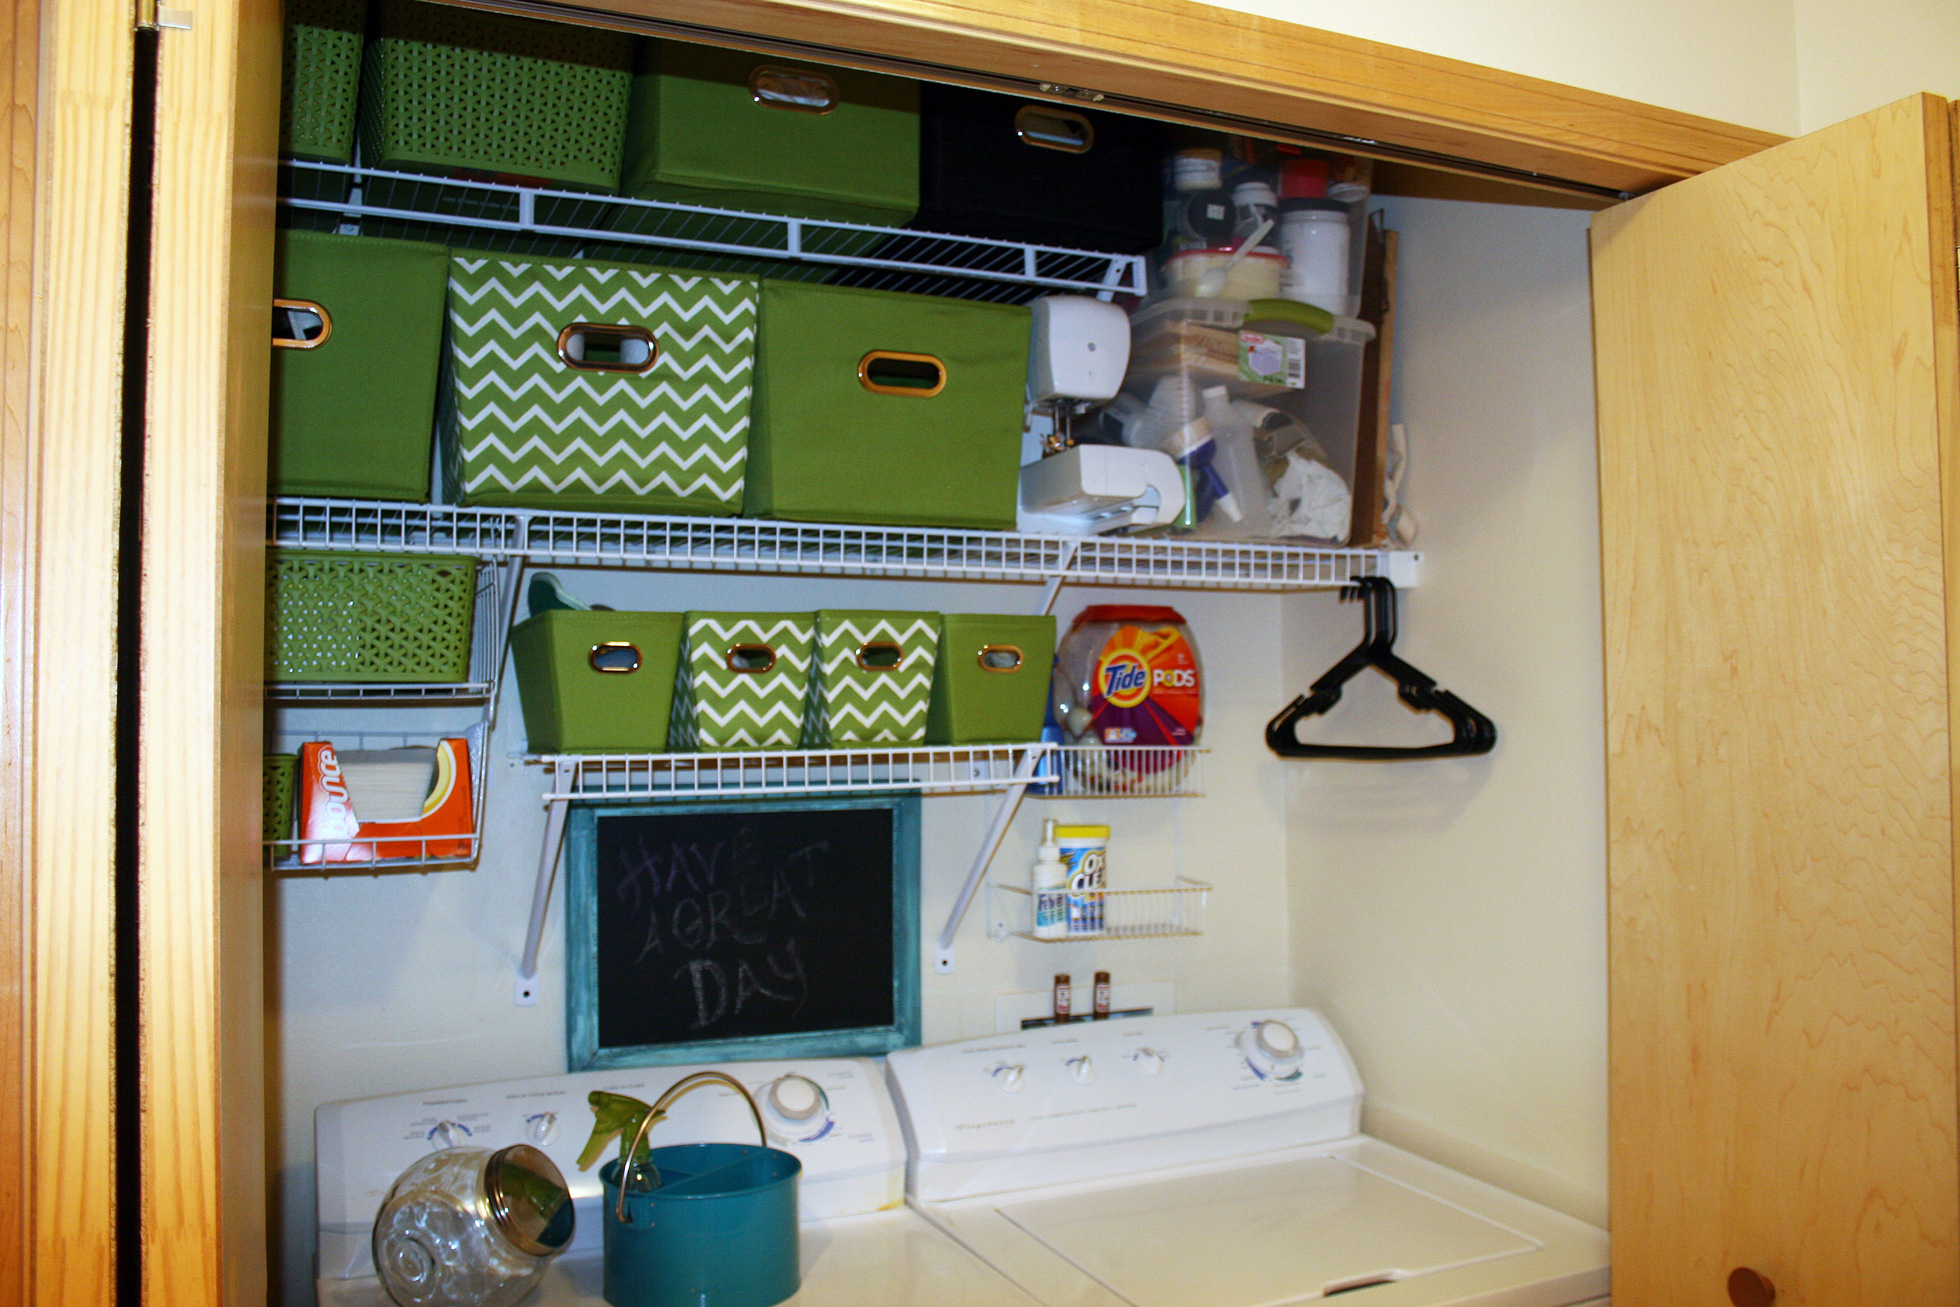 Closet converted to a laundry room